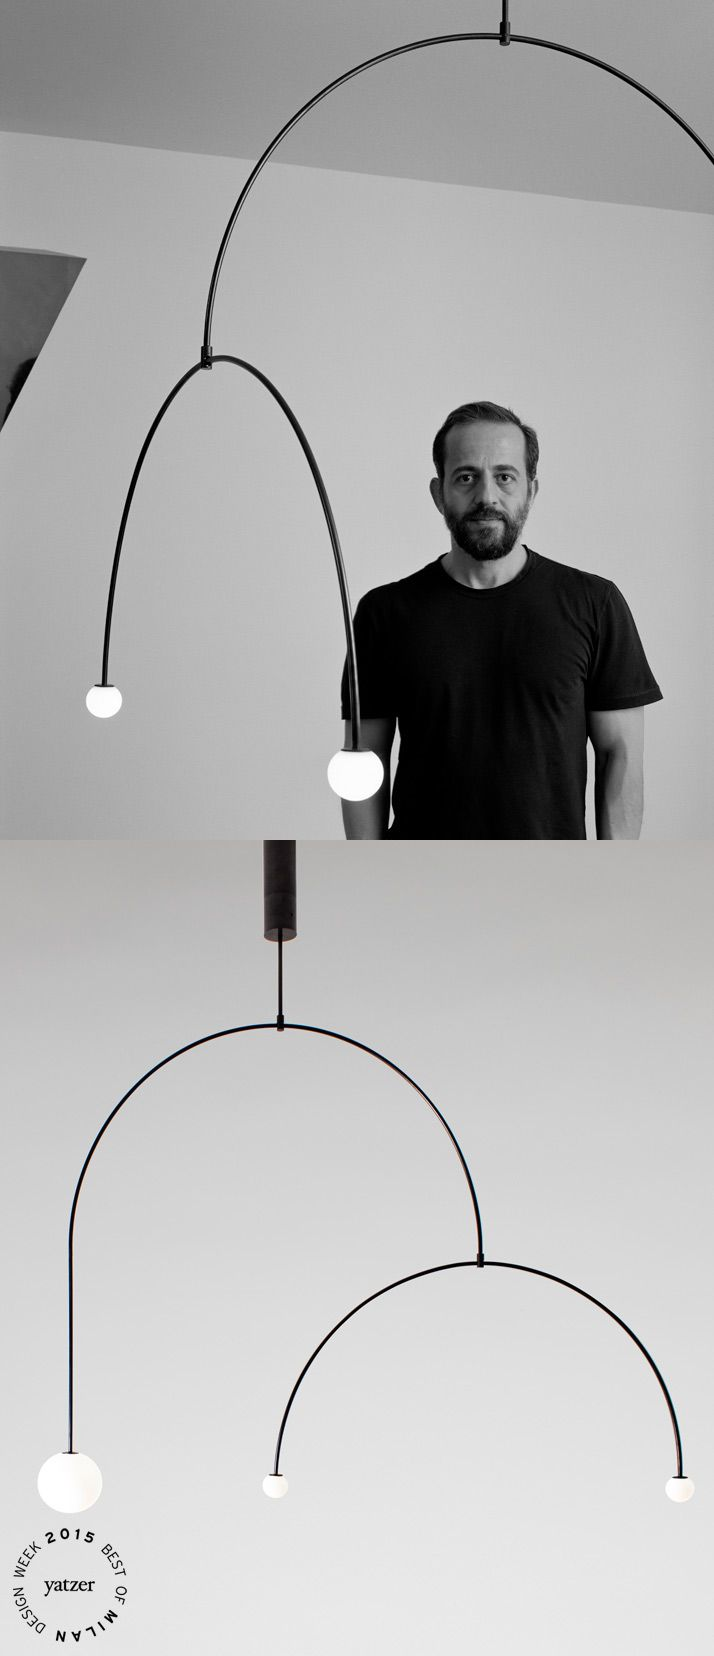 BEST OF MILAN DESIGN WEEK 2015 | Mobile Chandelier 9 is one of the 15 new lighting designs that Michael Anastassiades launched in Milan this year, extending the collection of minimal mobile chandeliers and spherical lamps produced by his own brand. Photographs by Hélène Binet. http://www.yatzer.com/best-of-milan-design-week-2015